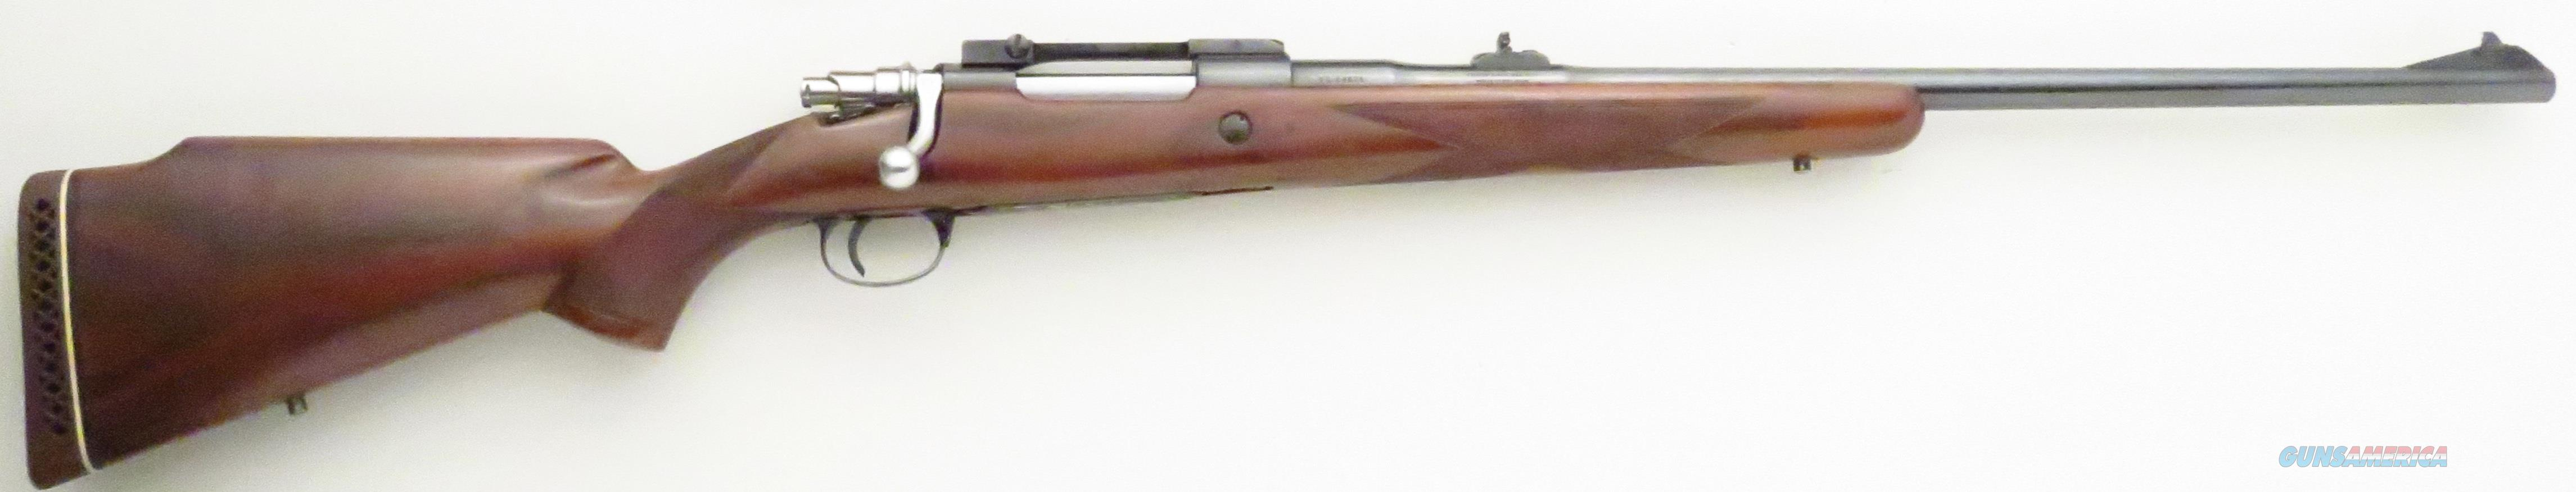 Browning High Power 7 Rem. Mag., long extractor  Guns > Rifles > Browning Rifles > Bolt Action > Hunting > Blue